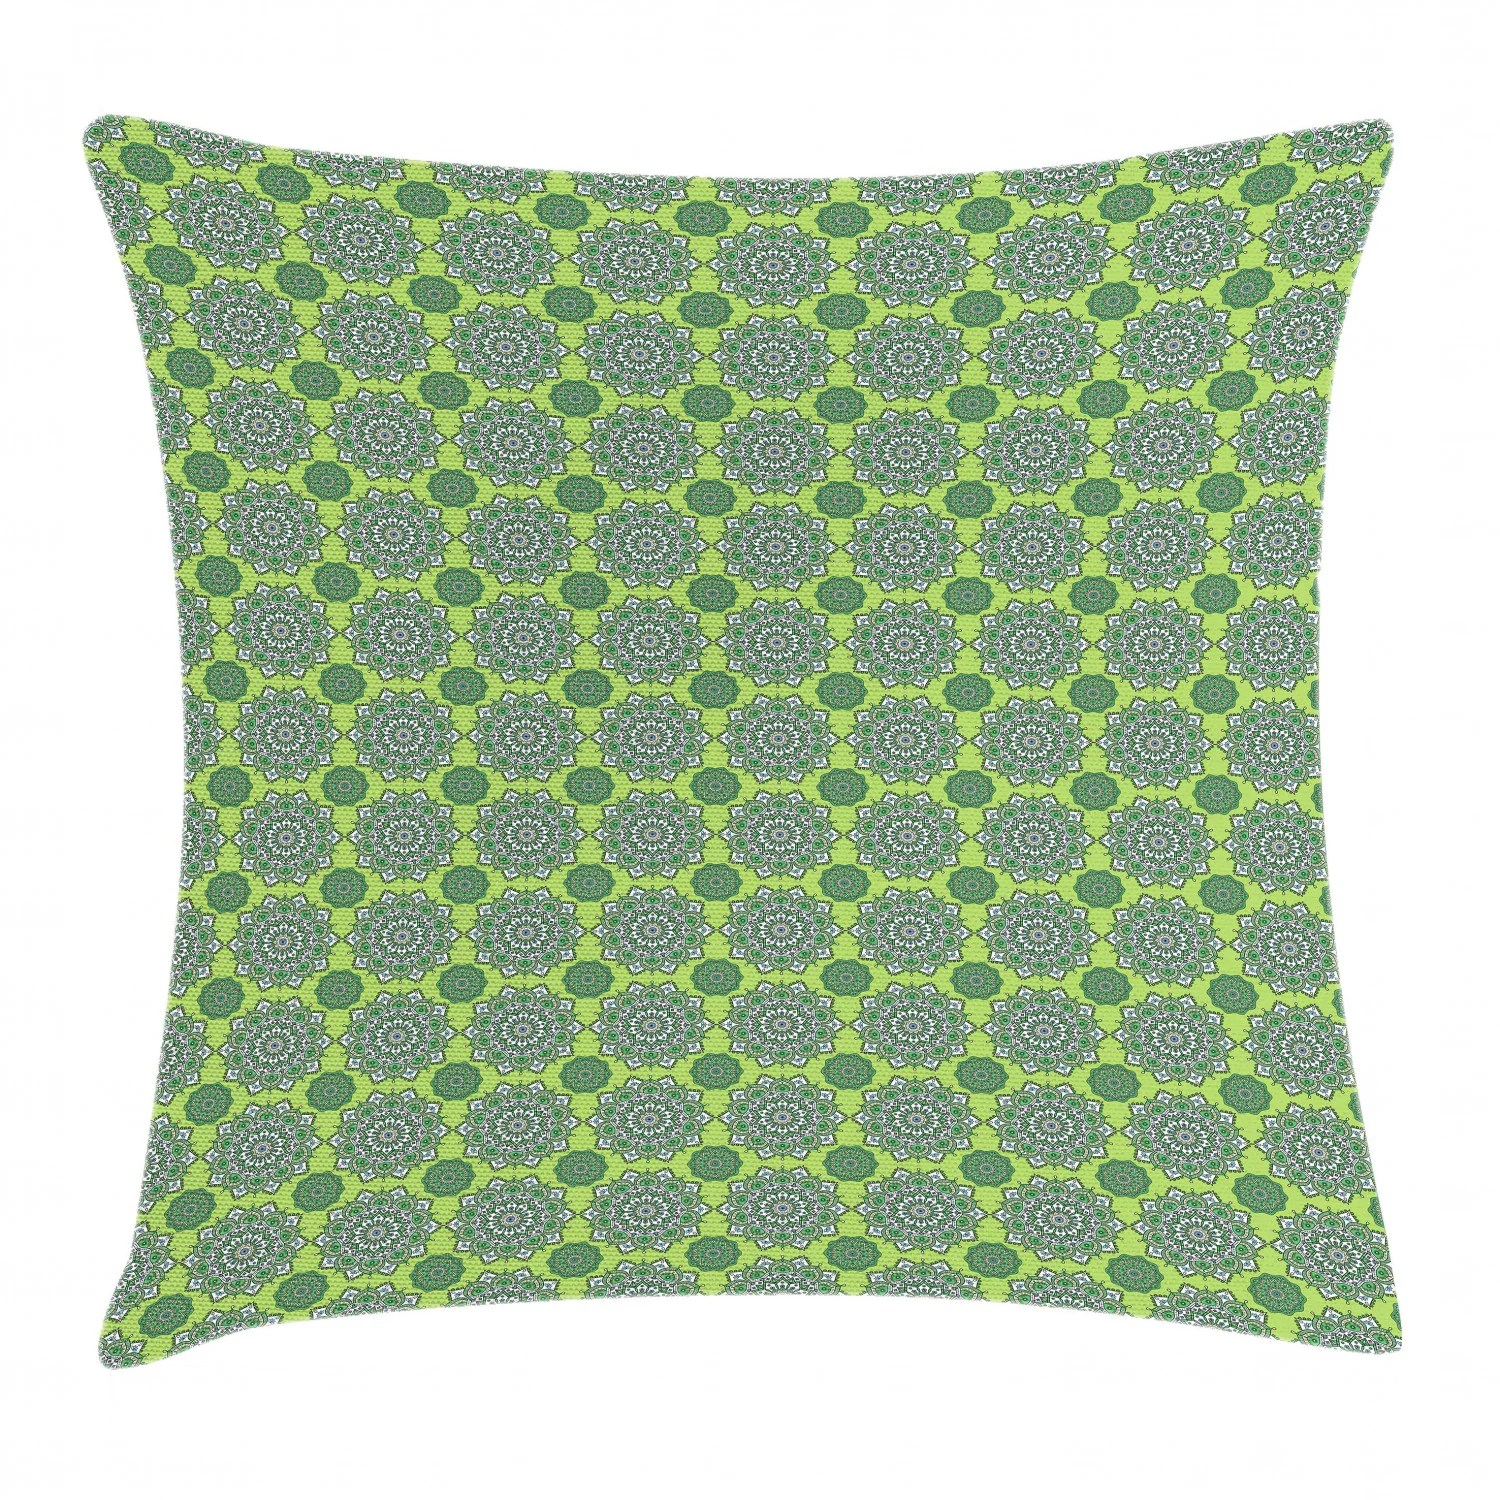 lime green throw pillow cushion cover arabesque oriental moroccan mandala middle eastern boho retro pattern decorative square accent pillow case 20